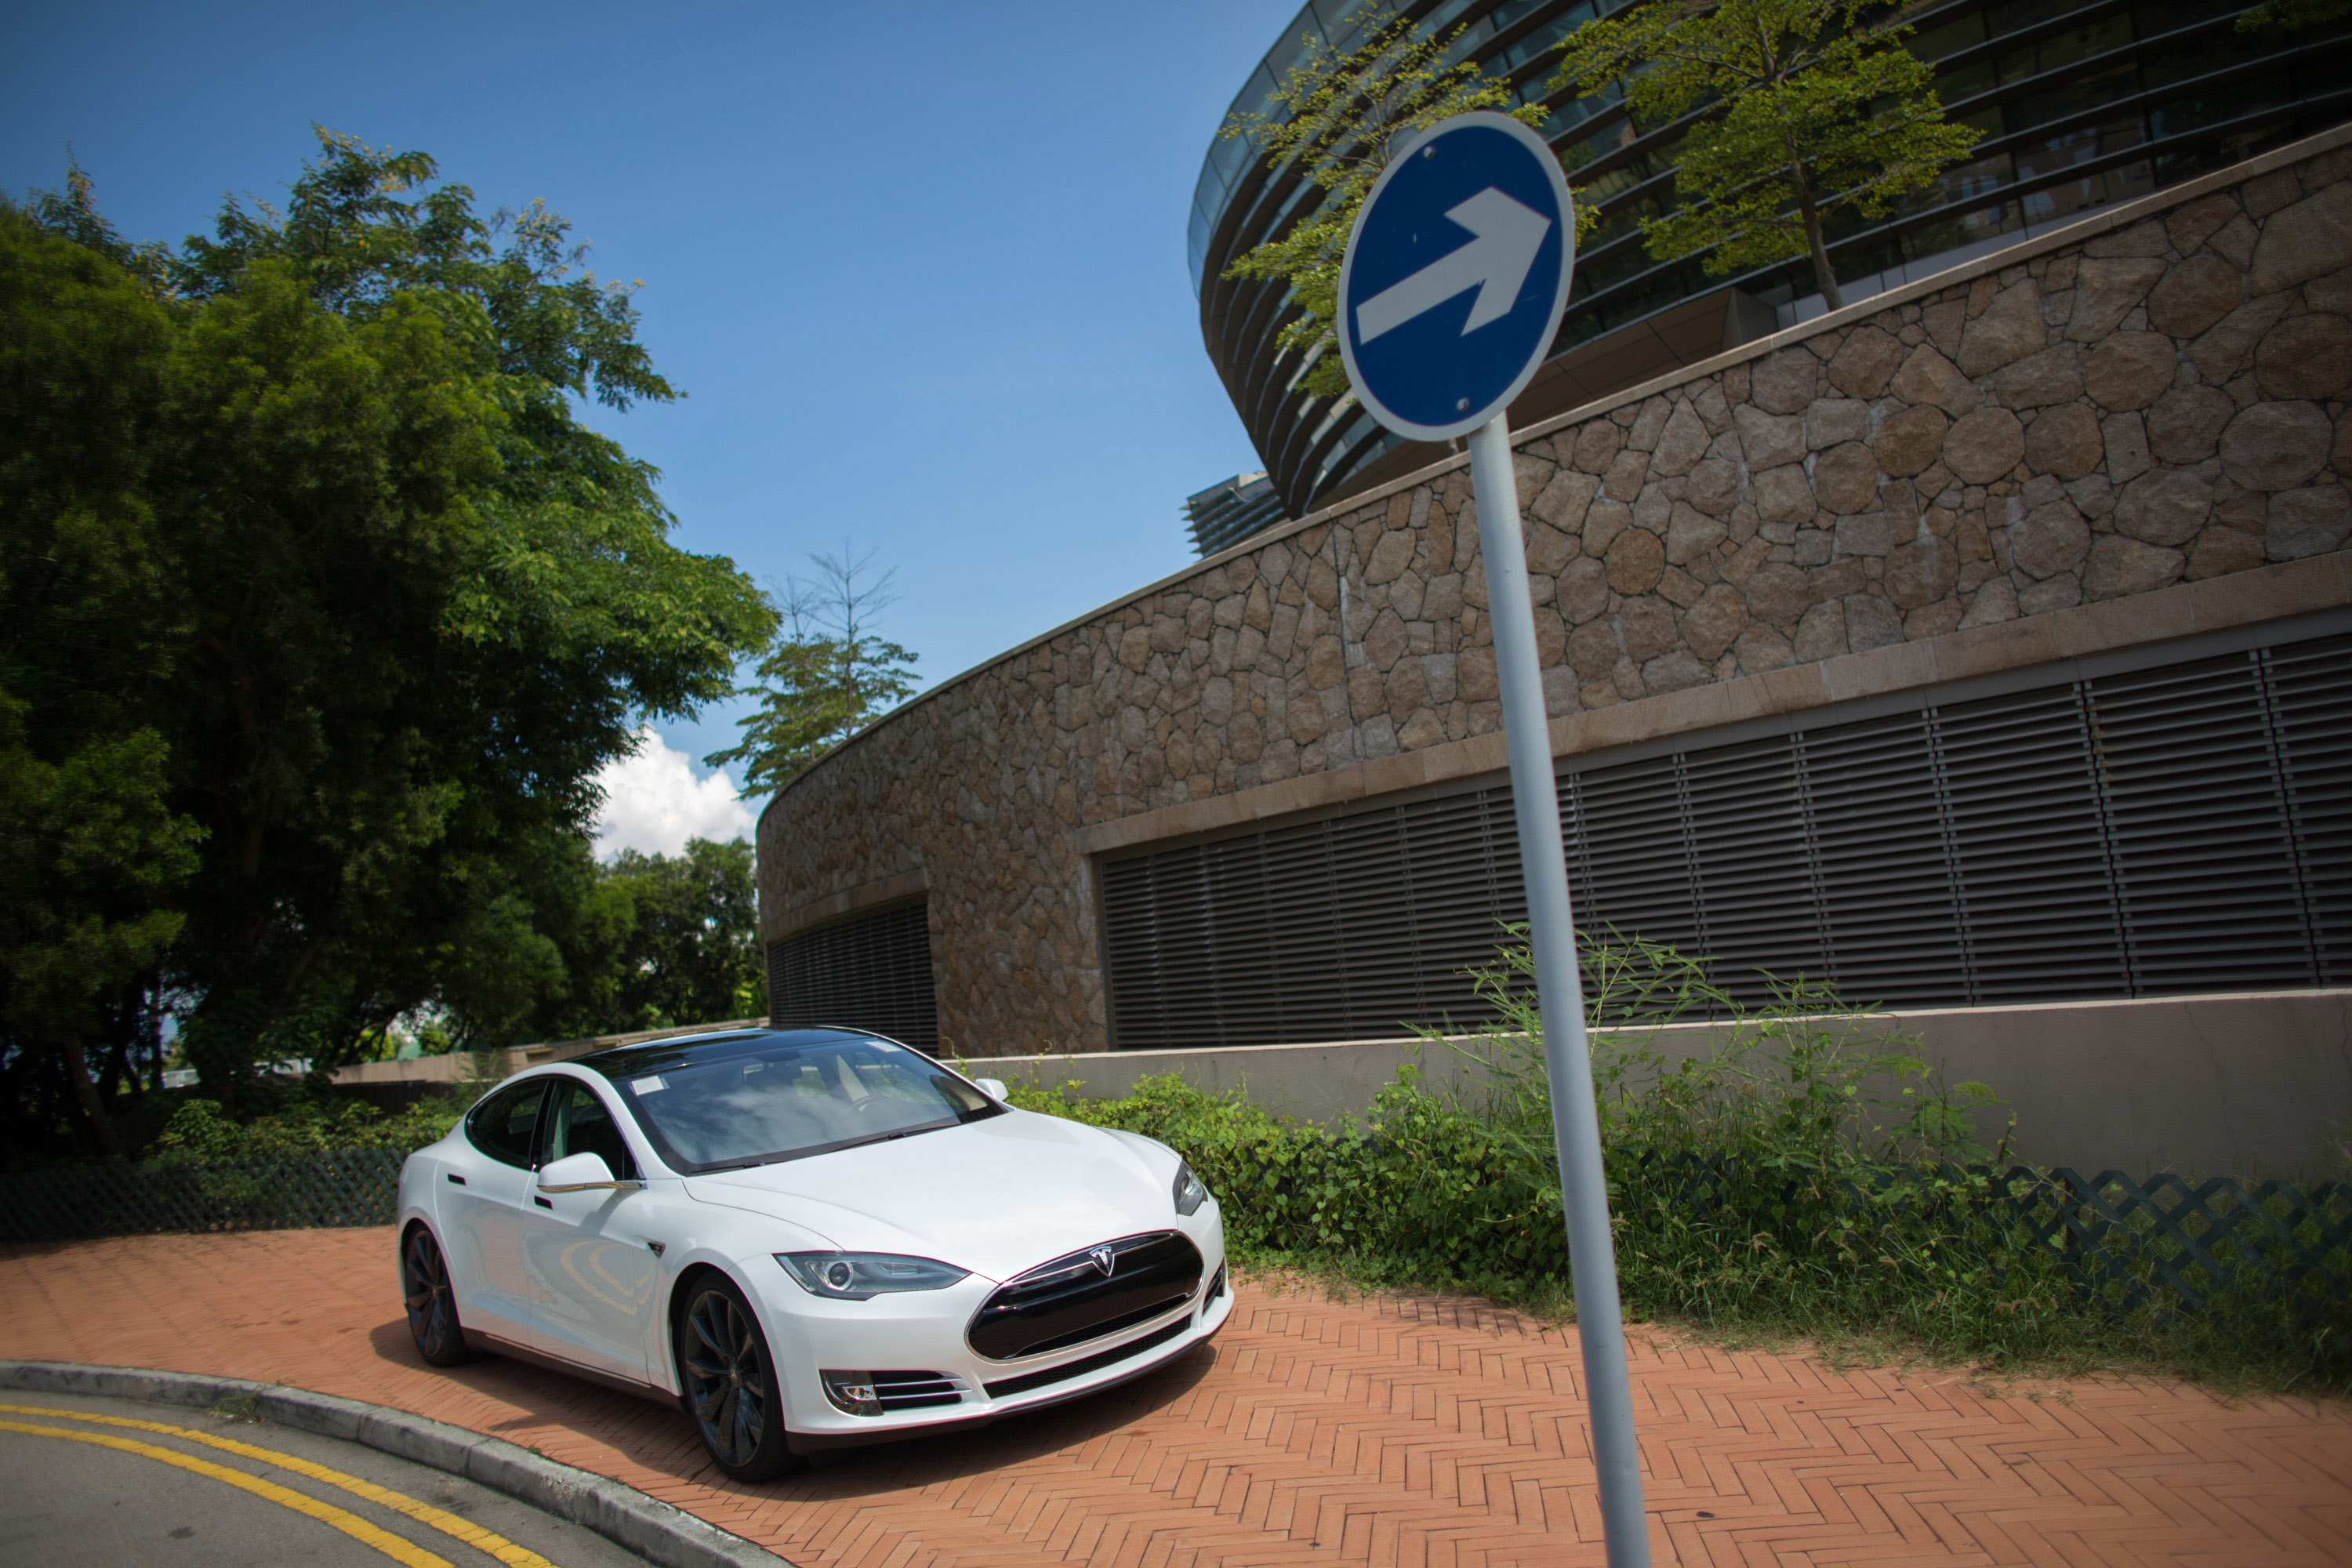 Tesla's Model S Sedan As Company Says It's Received Hundreds Of Orders In Hong Kong